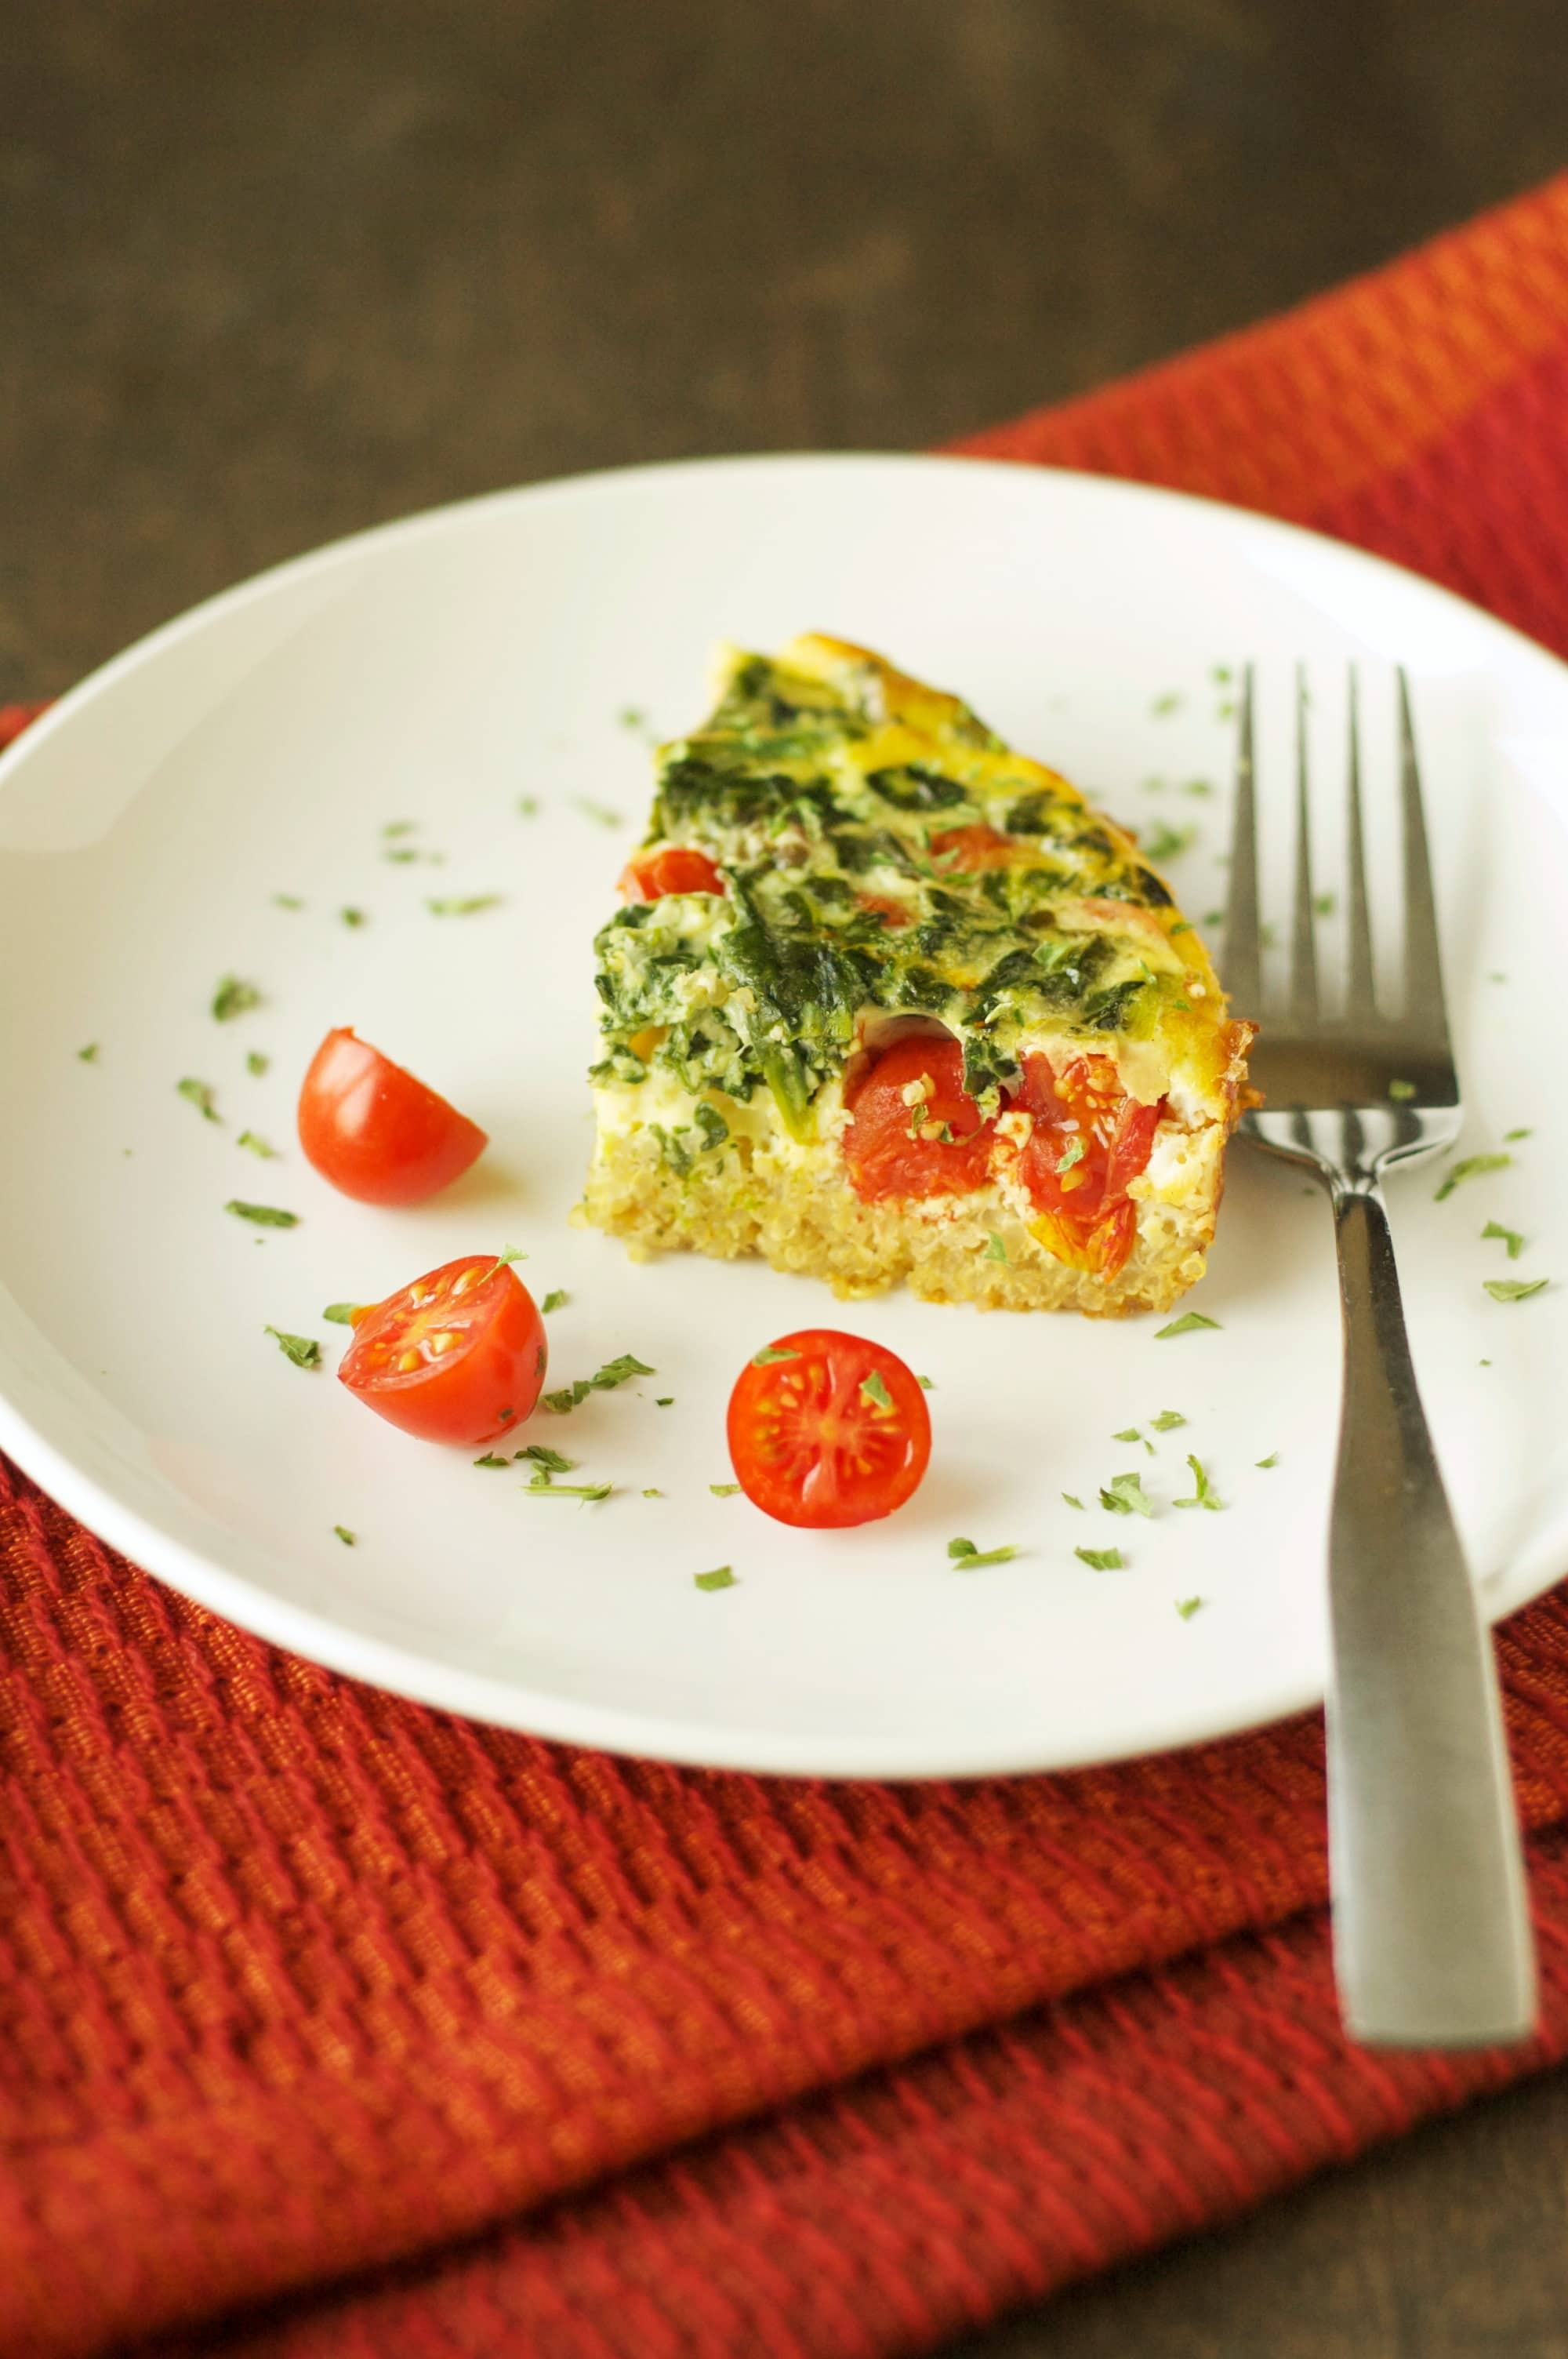 Crockpot Quinoa Breakfast Casserole with Tomatoes and Spinach